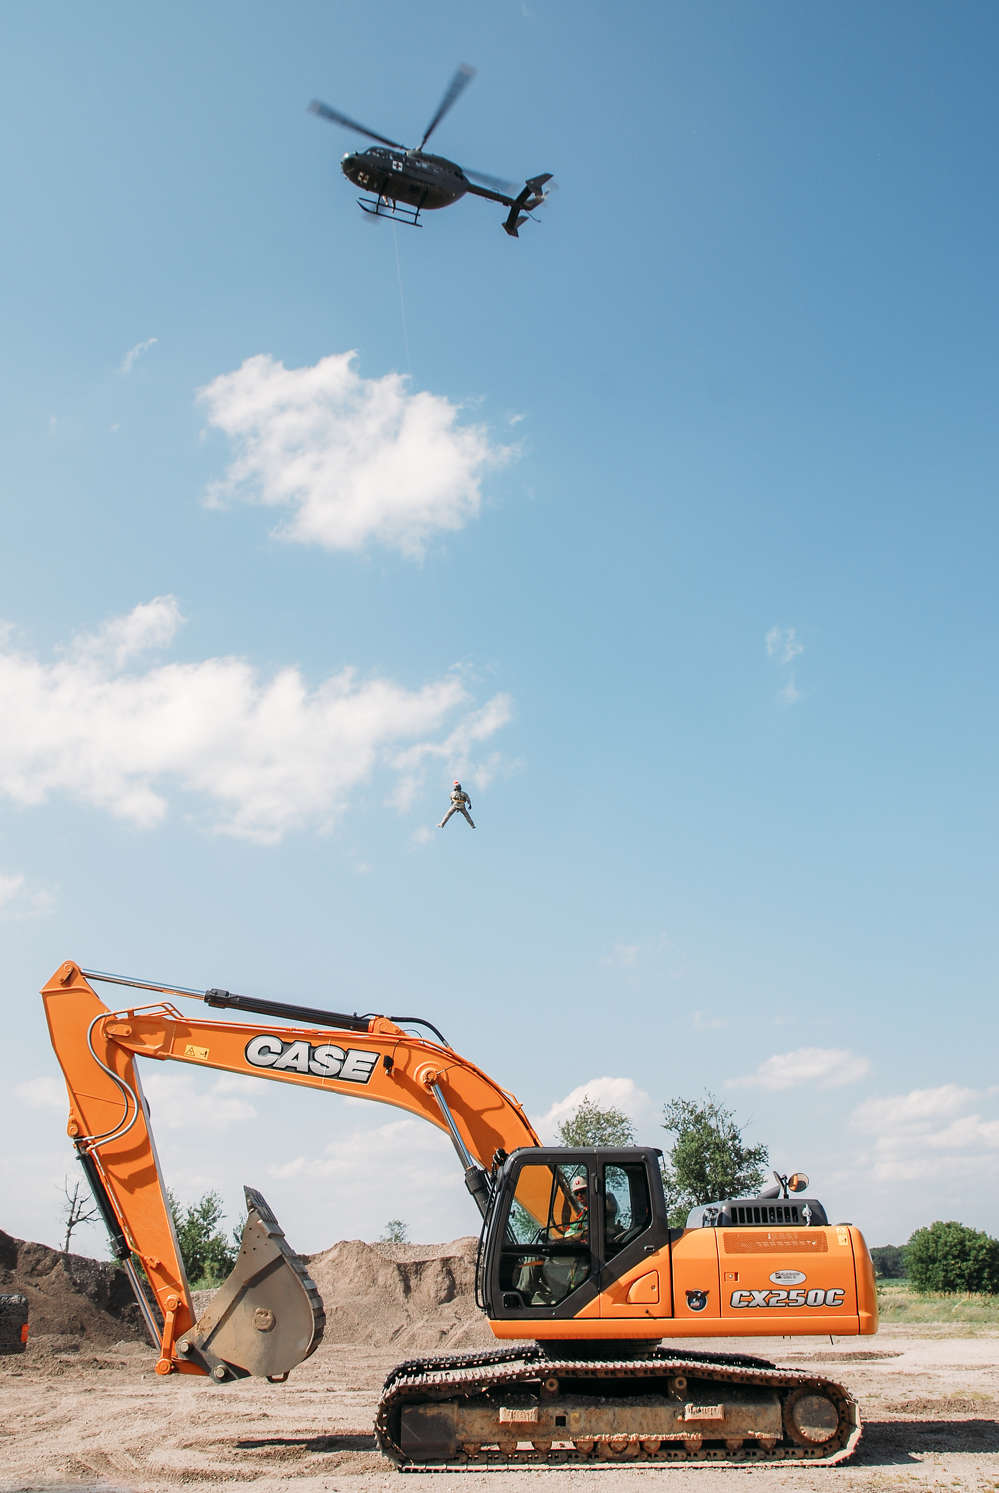 Case Construction Equipment and Miller-Bradford & Risberg provided equipment and product/training support to Team Rubicon as part of Patriot Exercise 2016, a full-scale training exercise at Volk Field Air National Guard Base July 16 to 23.